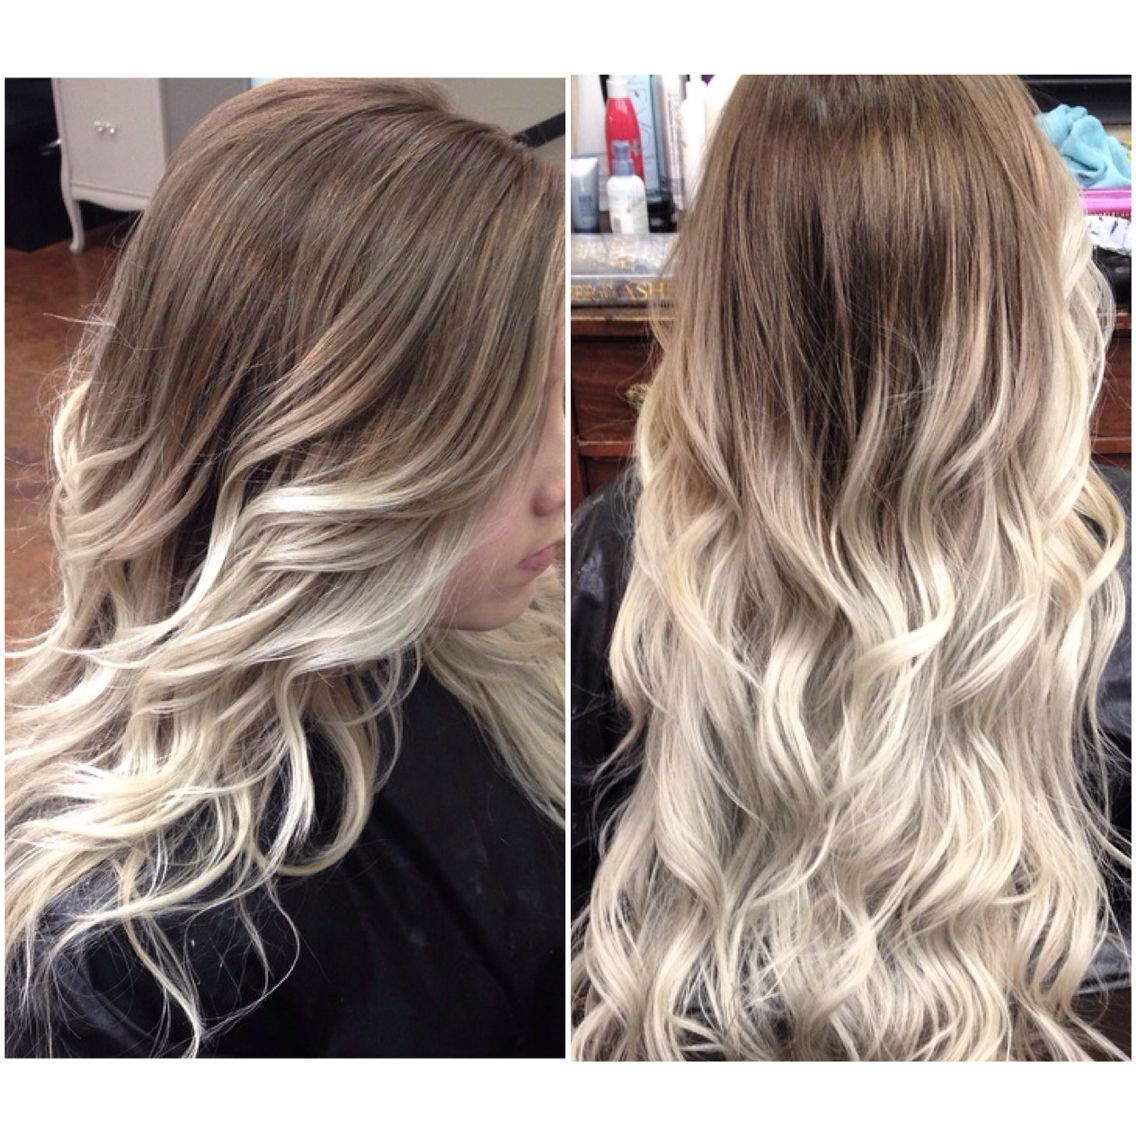 Icy blonde ombre! icyblonde ashblonde balayge ombre